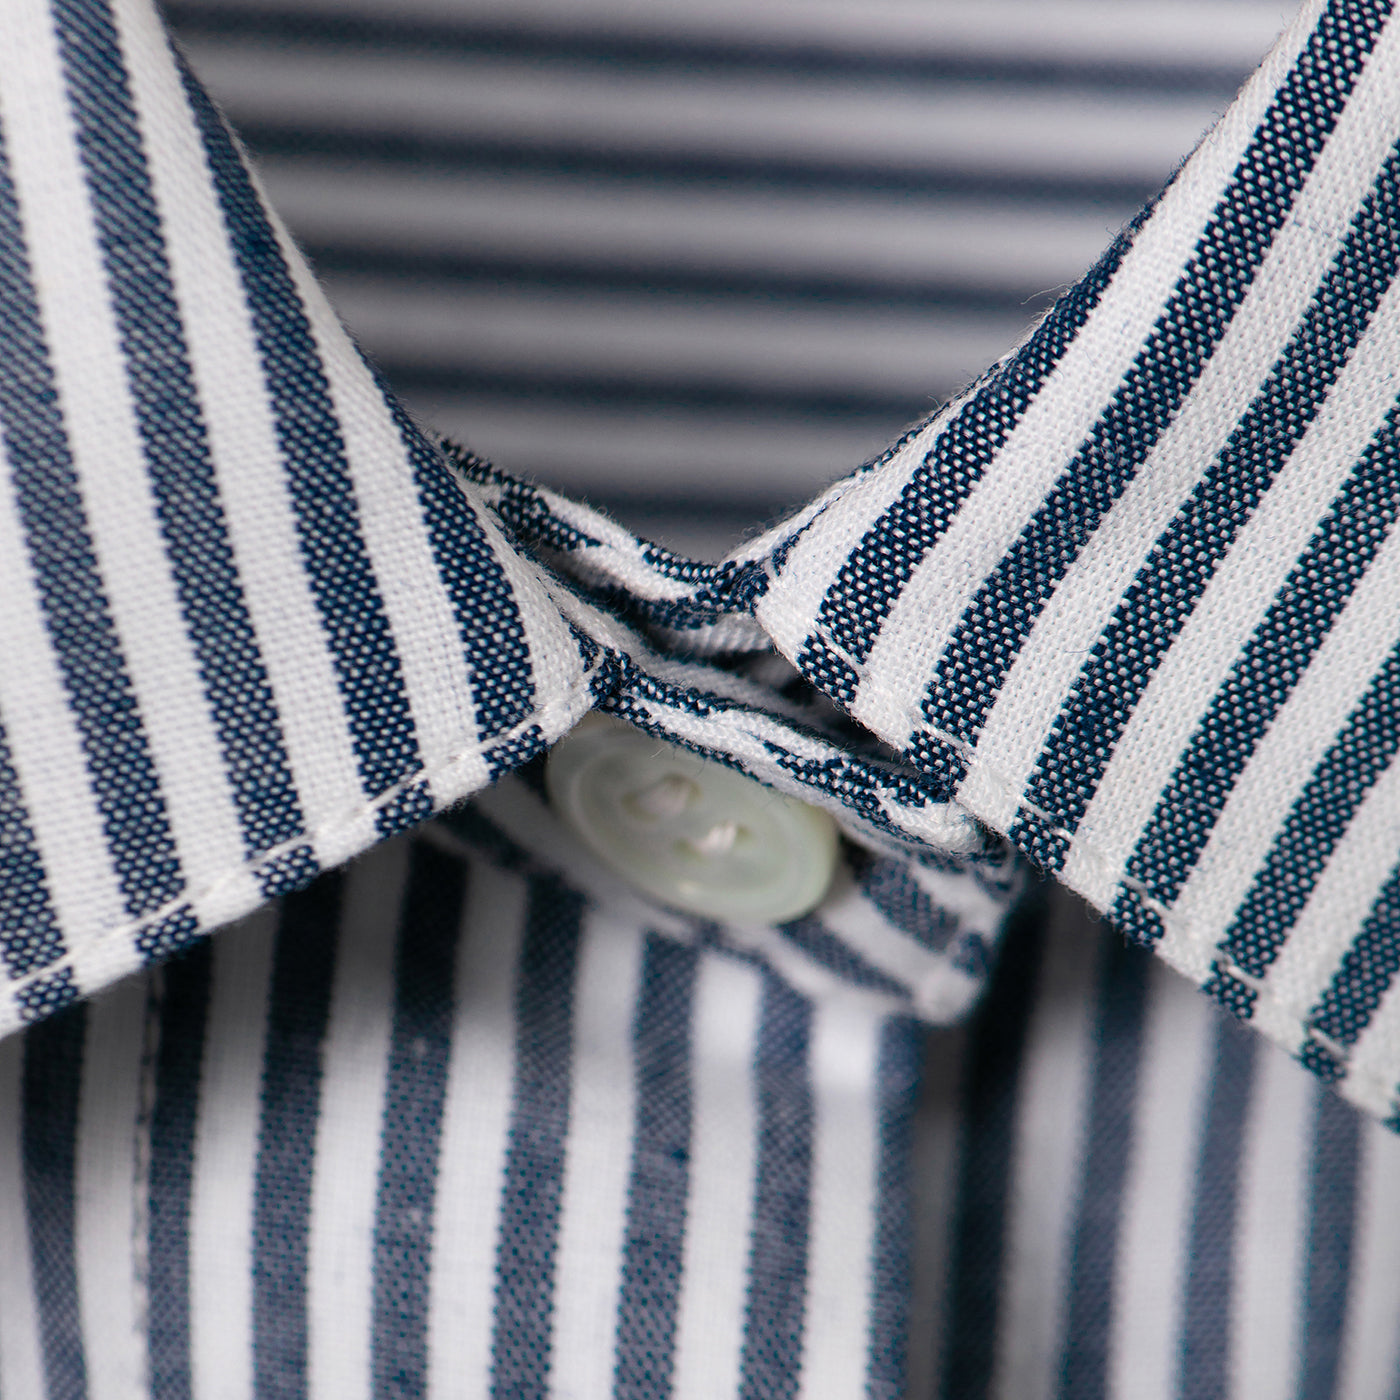 Striped blue-white eco shirt. GOTS certified textile. 100% natural. Sustainable fashion.